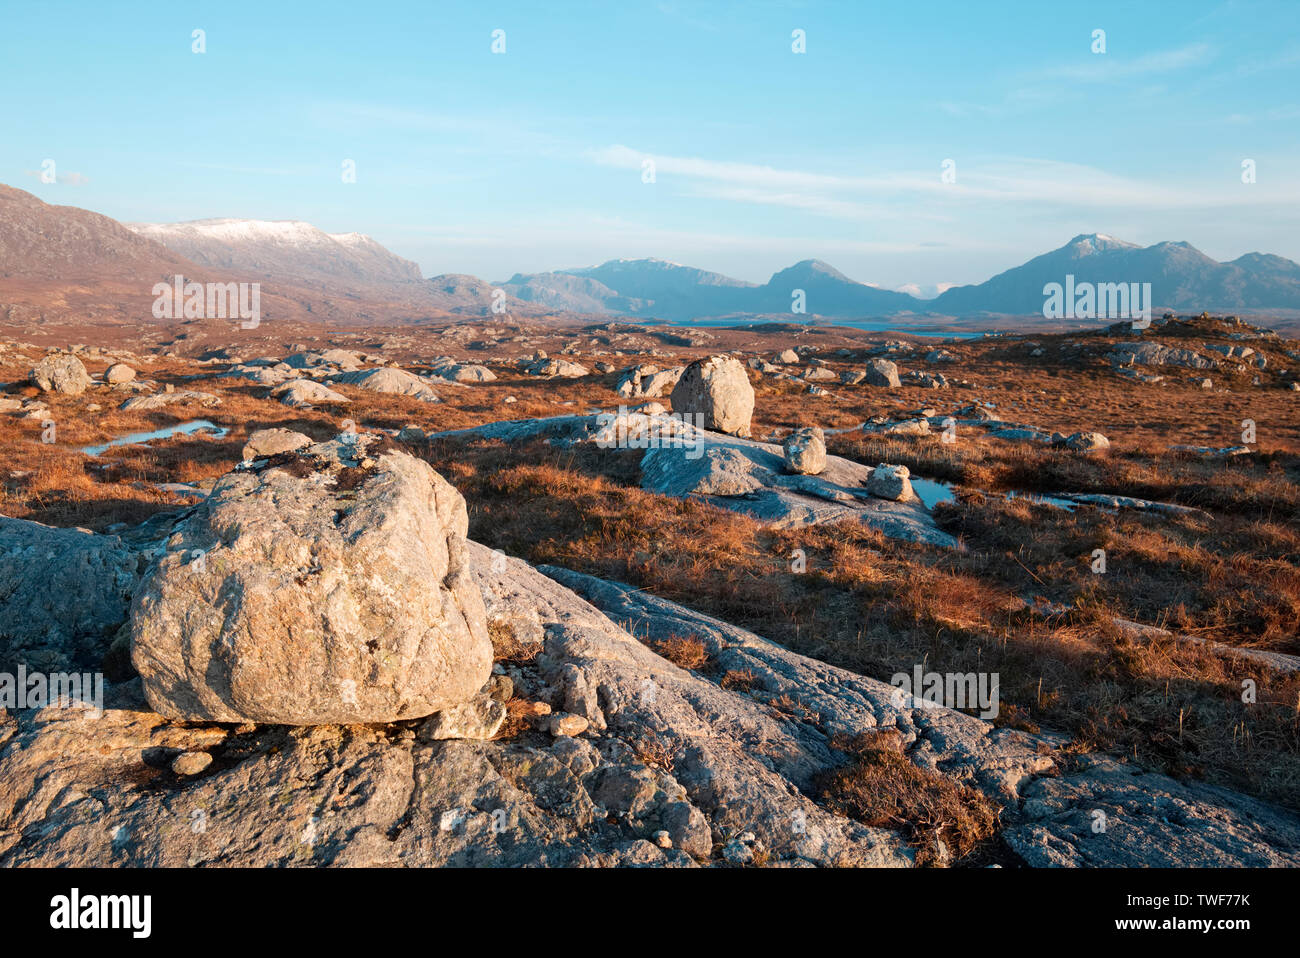 Glacial erratic boulders in Wester Ross, Highland Scotland - Stock Image